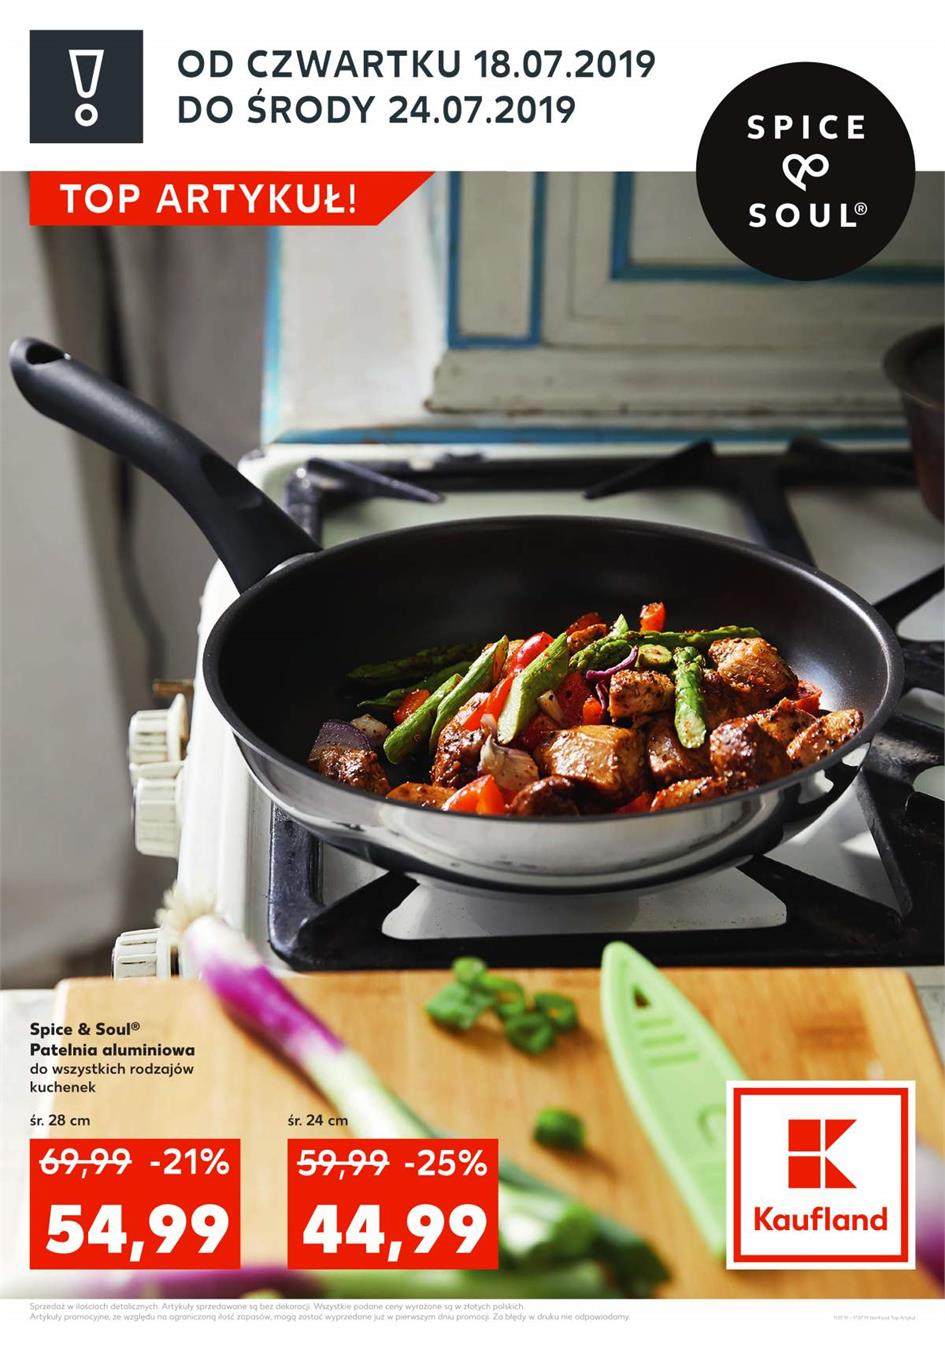 Gazetka Kaufland Polska Markety Sp. z o.o nr 1 od 2019-07-18 do 2019-07-24